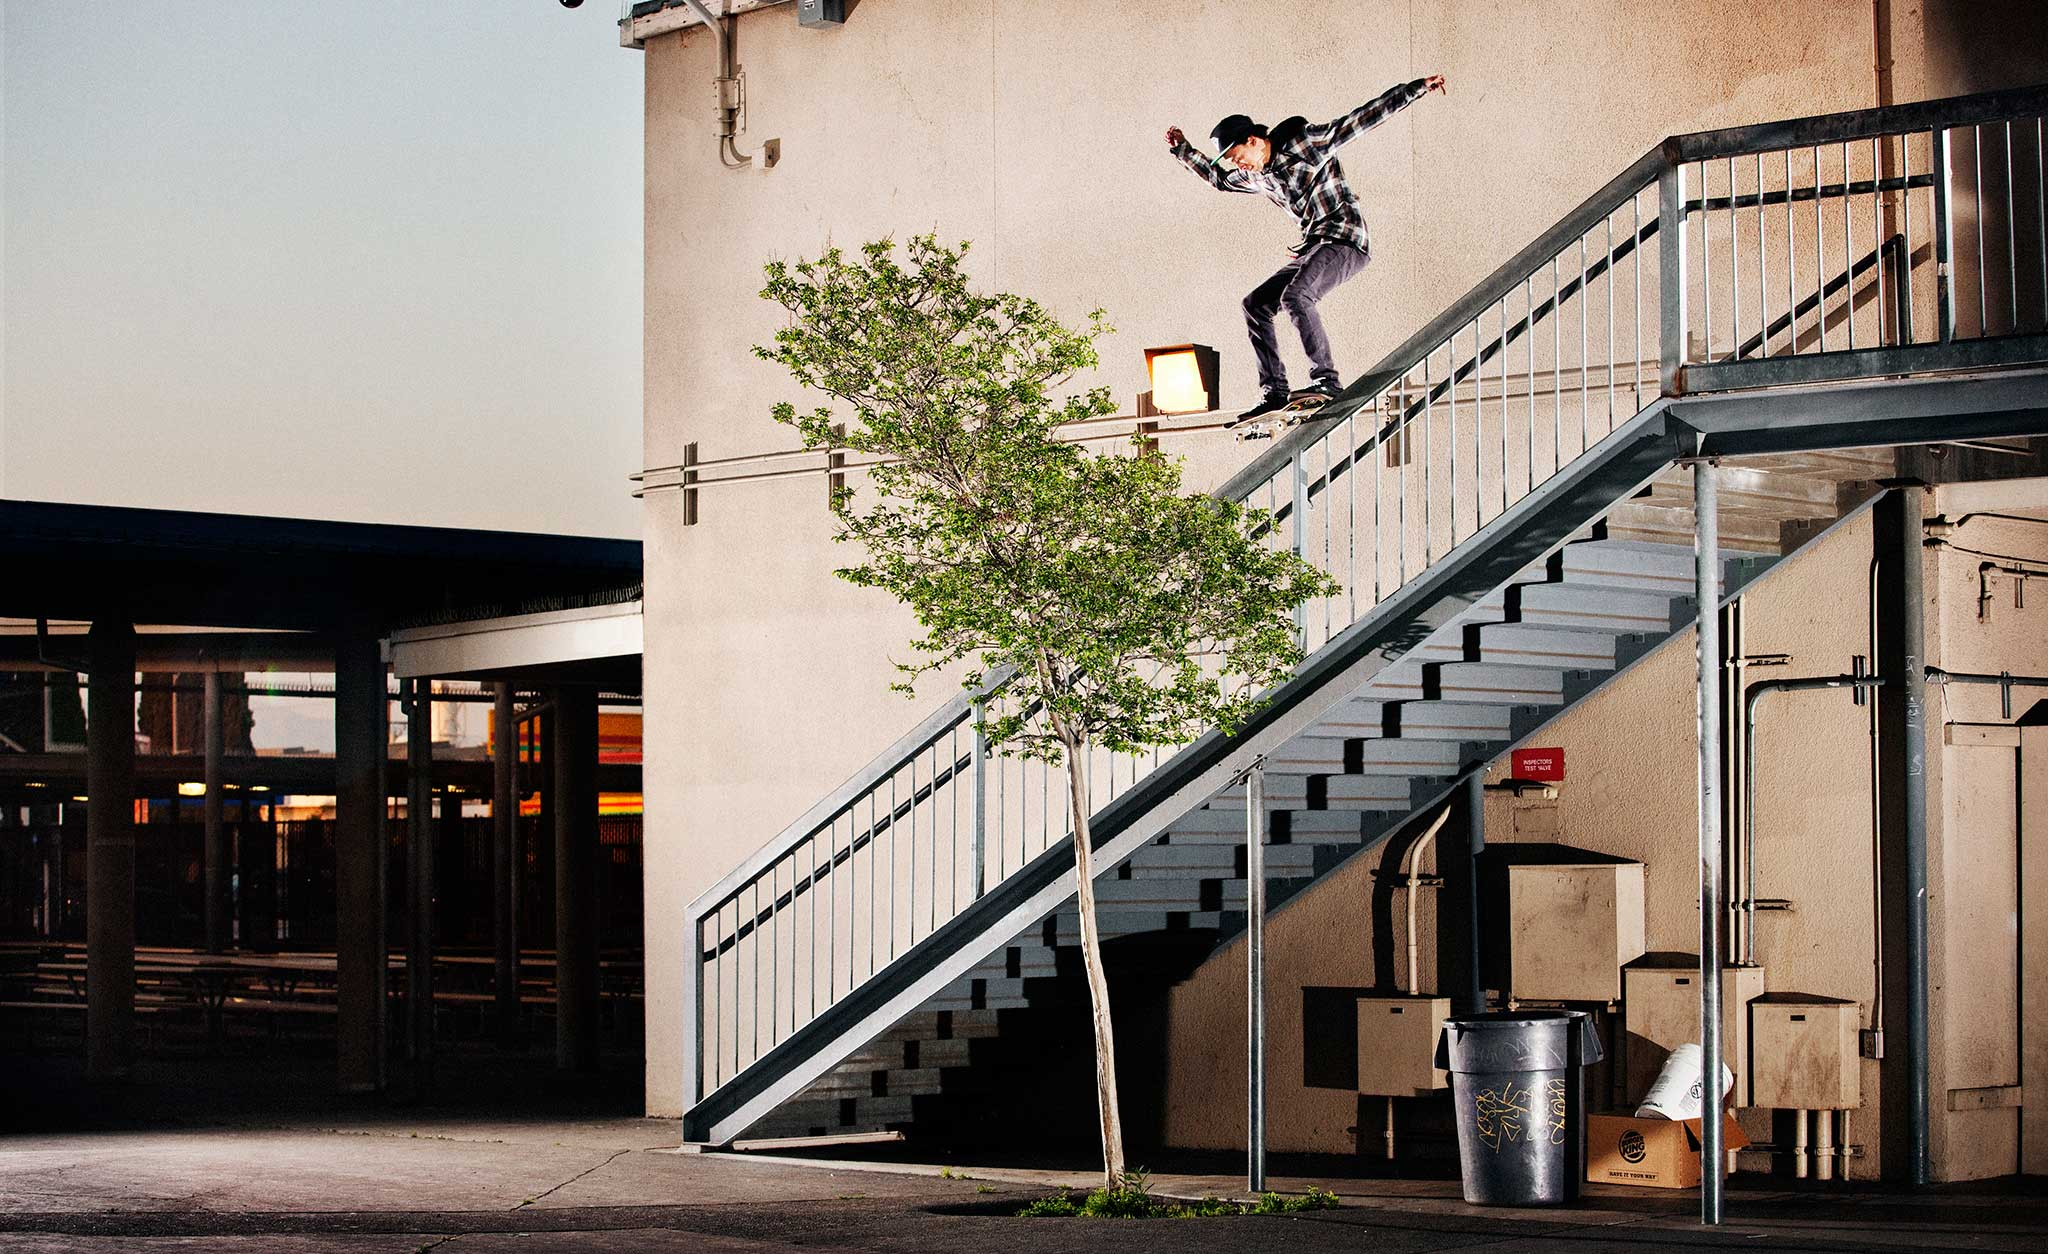 That's one massive 5-0 grind -- Nyjah takes it in stride.